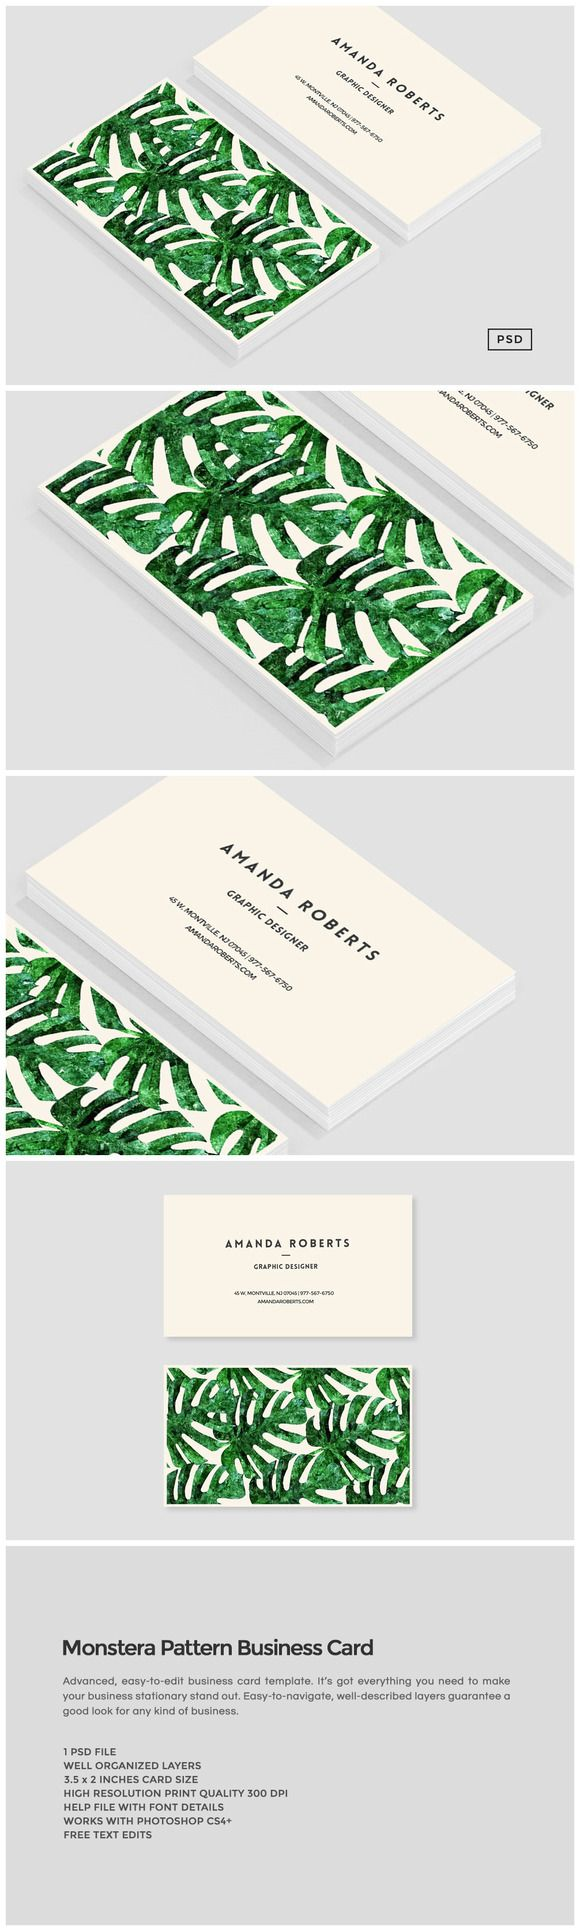 best 25+ free business cards ideas on pinterest  free business